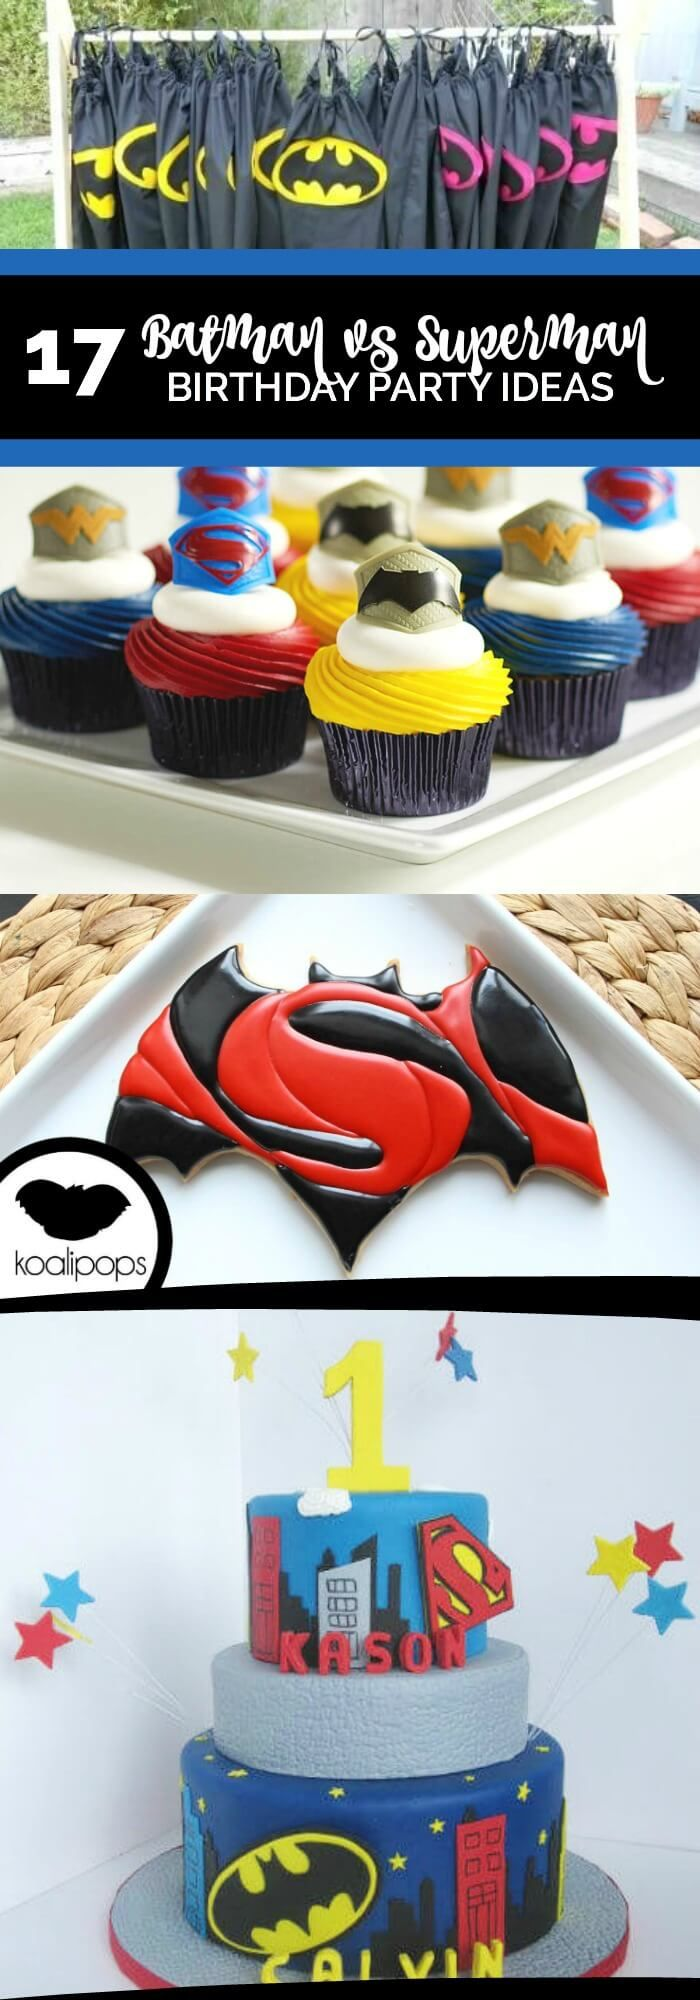 17 Awesome Batman vs. Superman Party Ideas